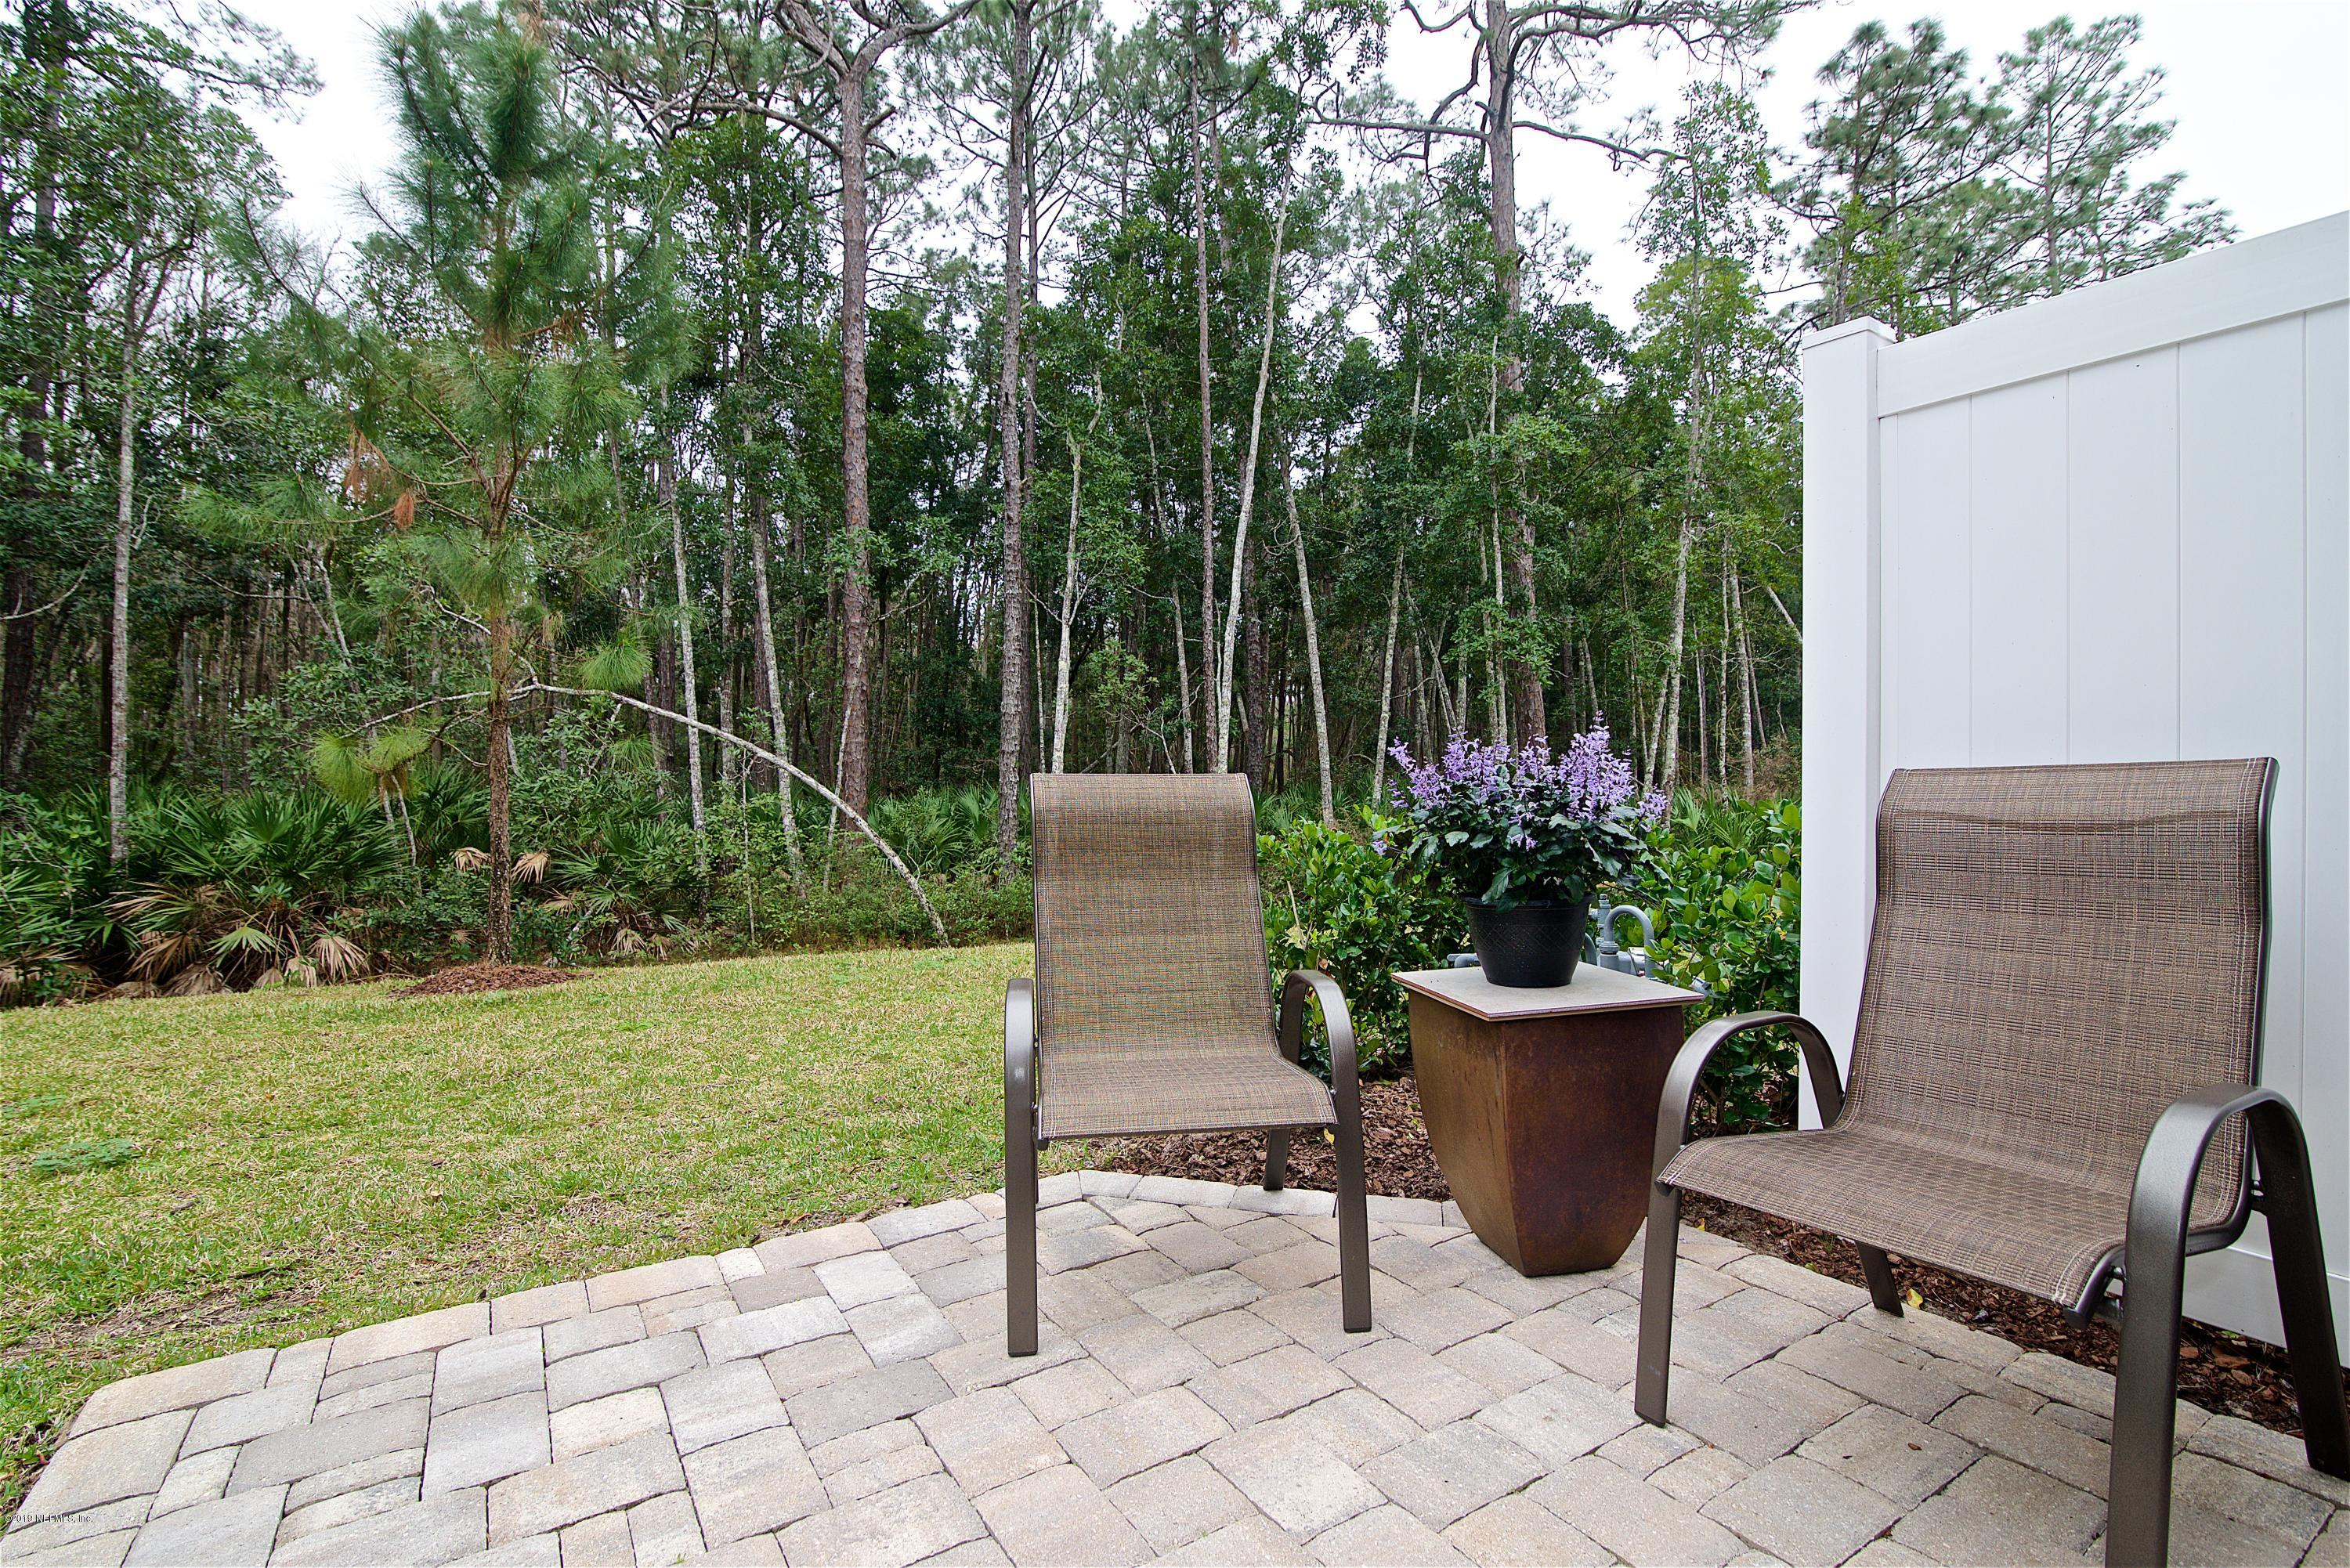 488 COCONUT PALM PKWY PONTE VEDRA BEACH - 24